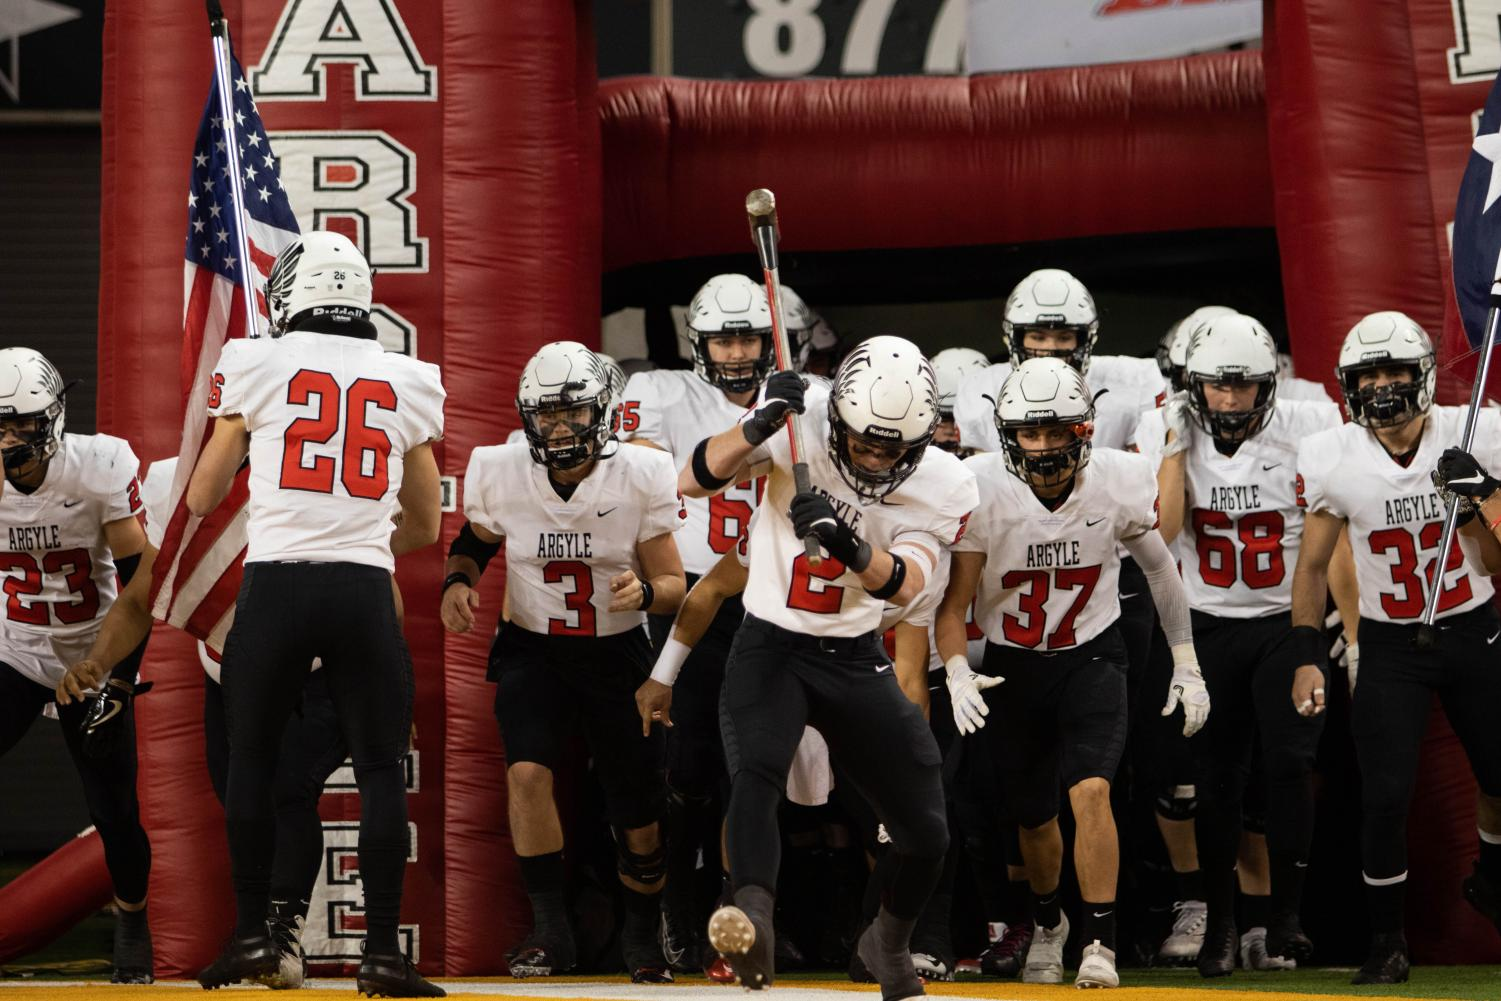 The Argyle Eagles took on the LaVega Pirates in their final game of the season at McLane Stadium in Waco, Texas. (Sloan Dial / The Talon News)